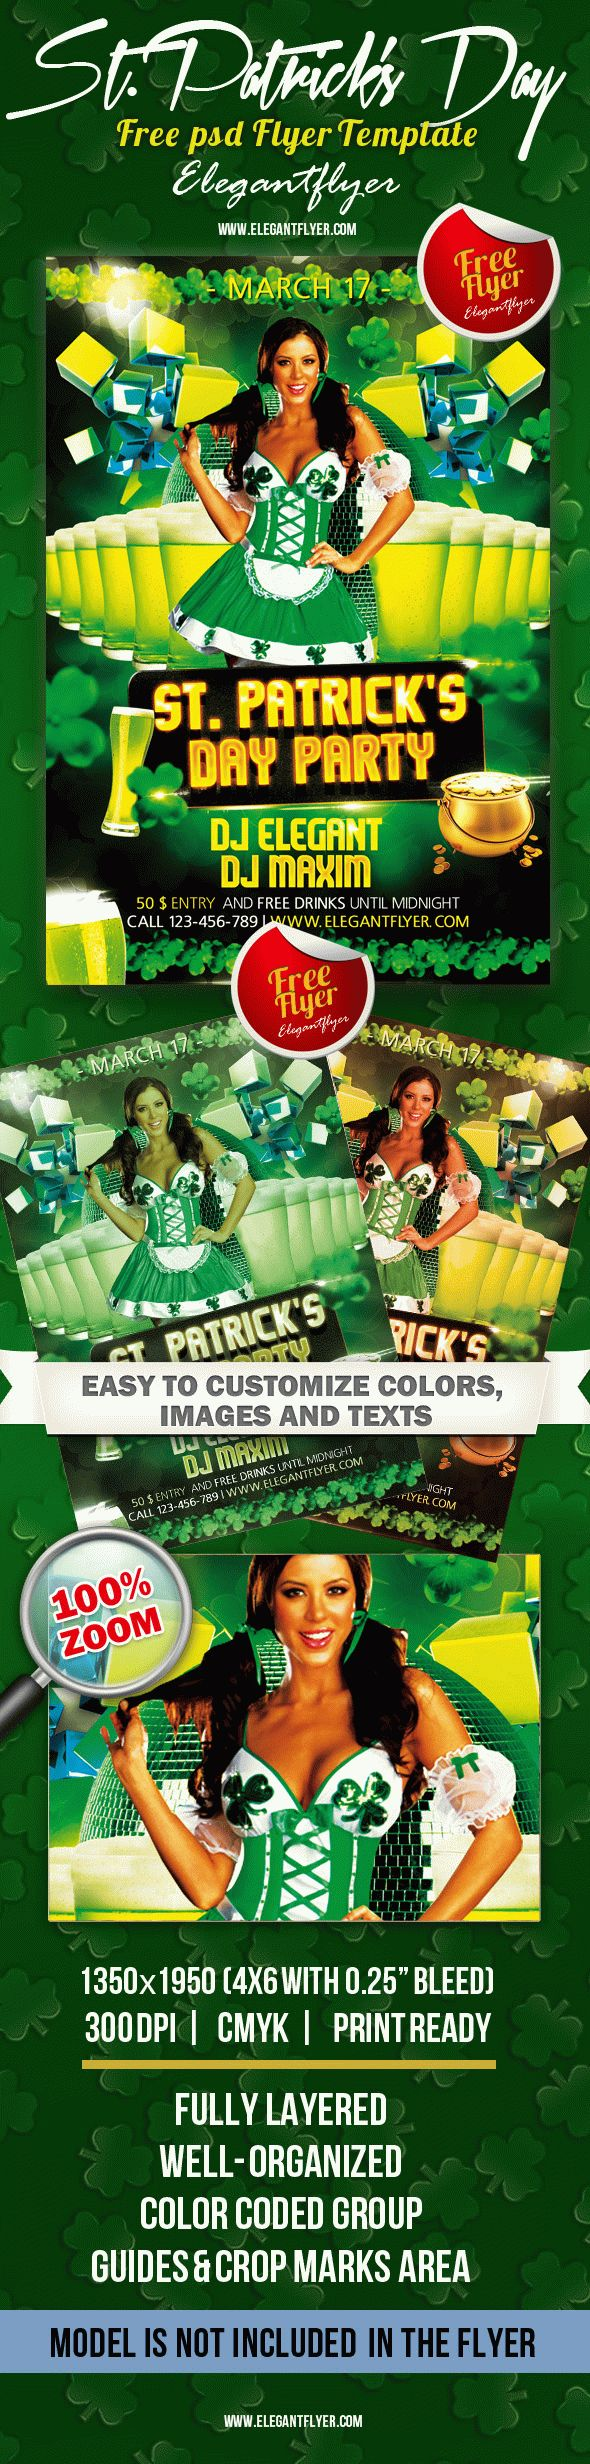 Party for St. Patrick's Day